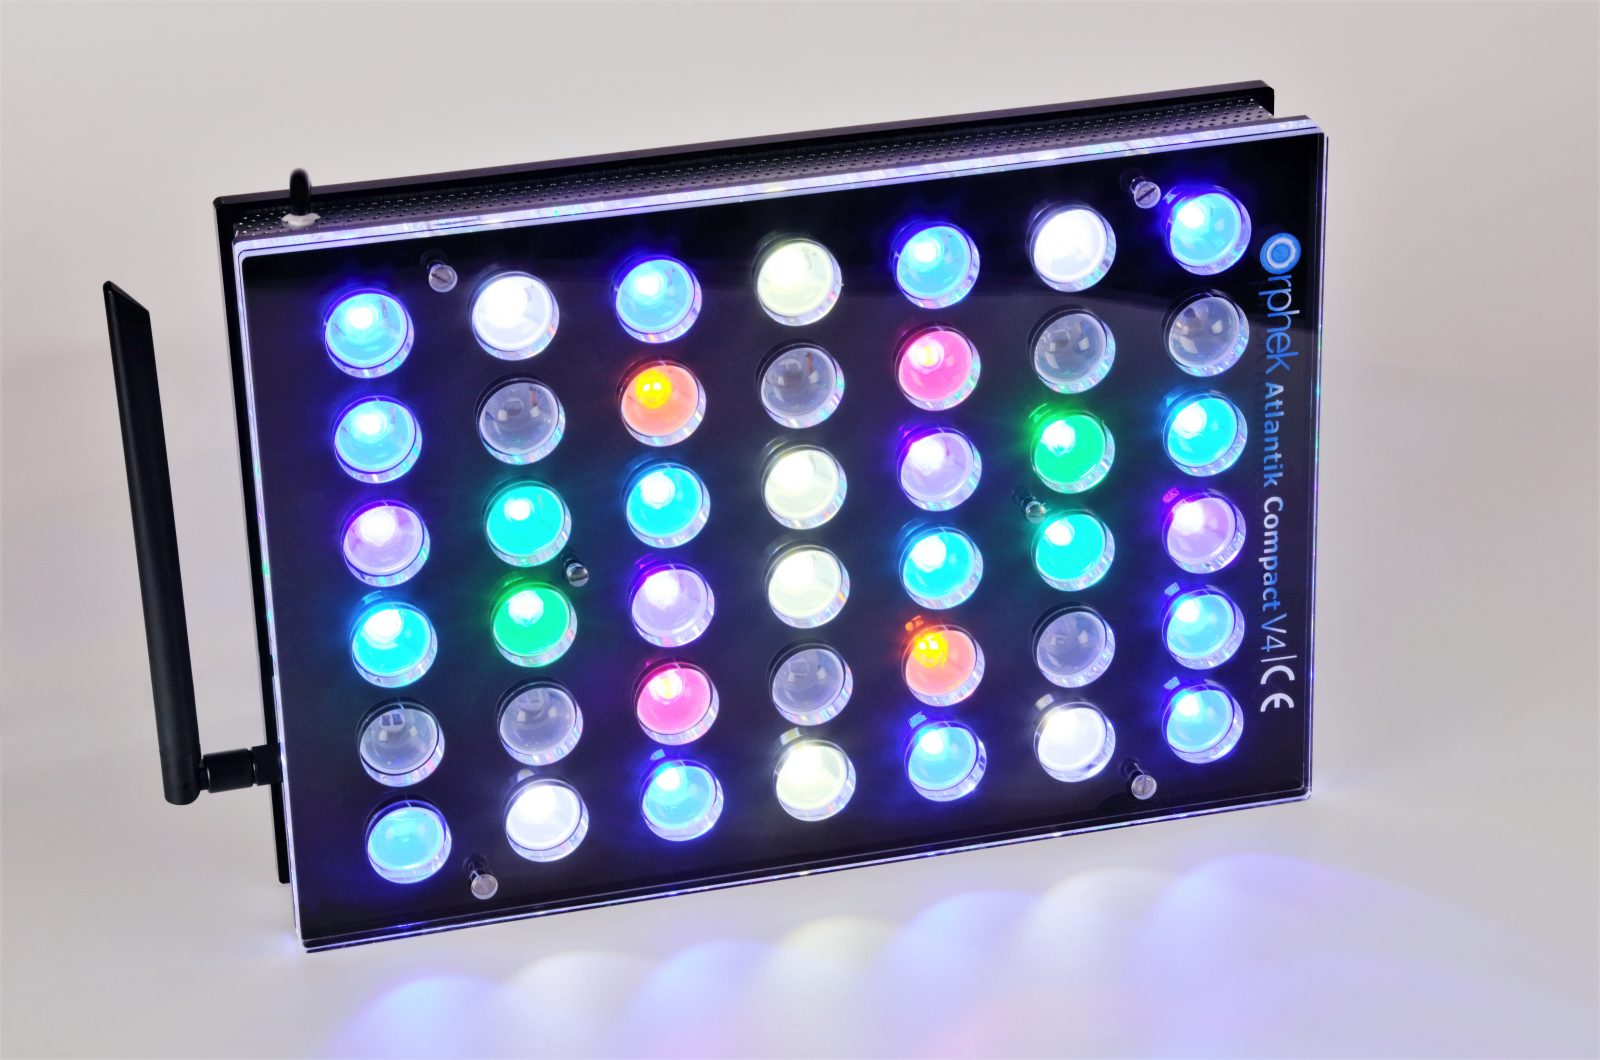 Orphek Aquarium LED Lighting Atlantik Compact V4 lig op kanaal 1 + 2 + 4